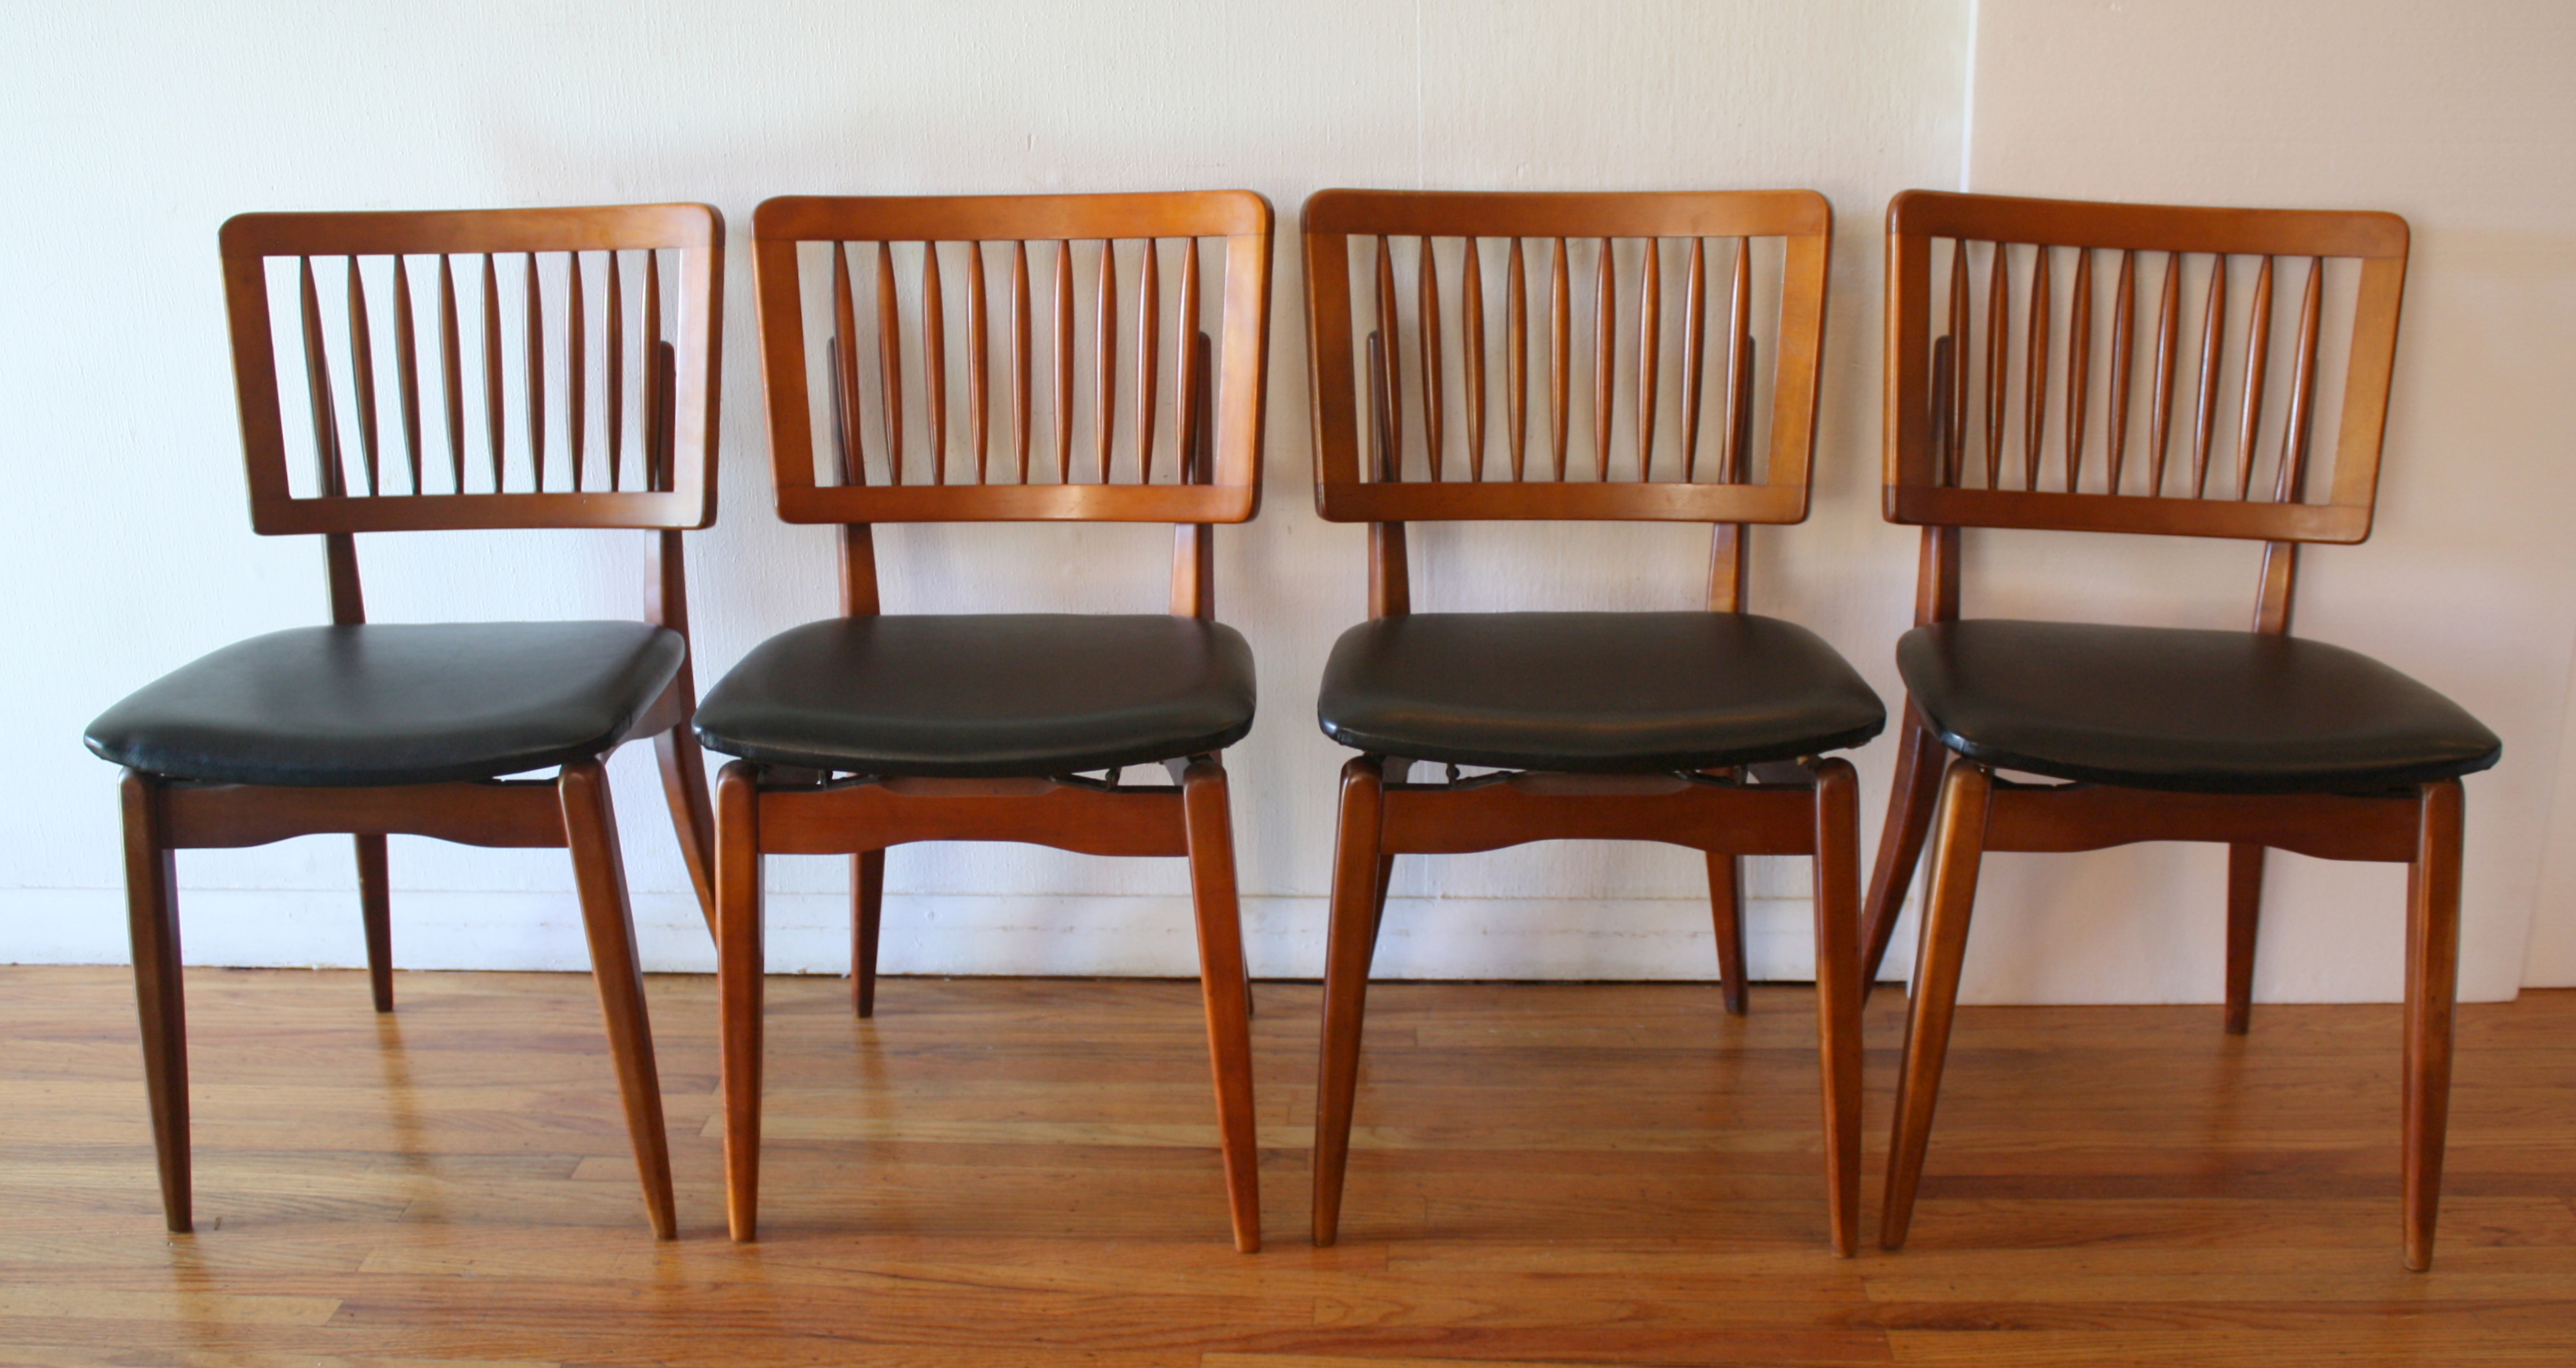 Stakmore Chairs 1.JPG